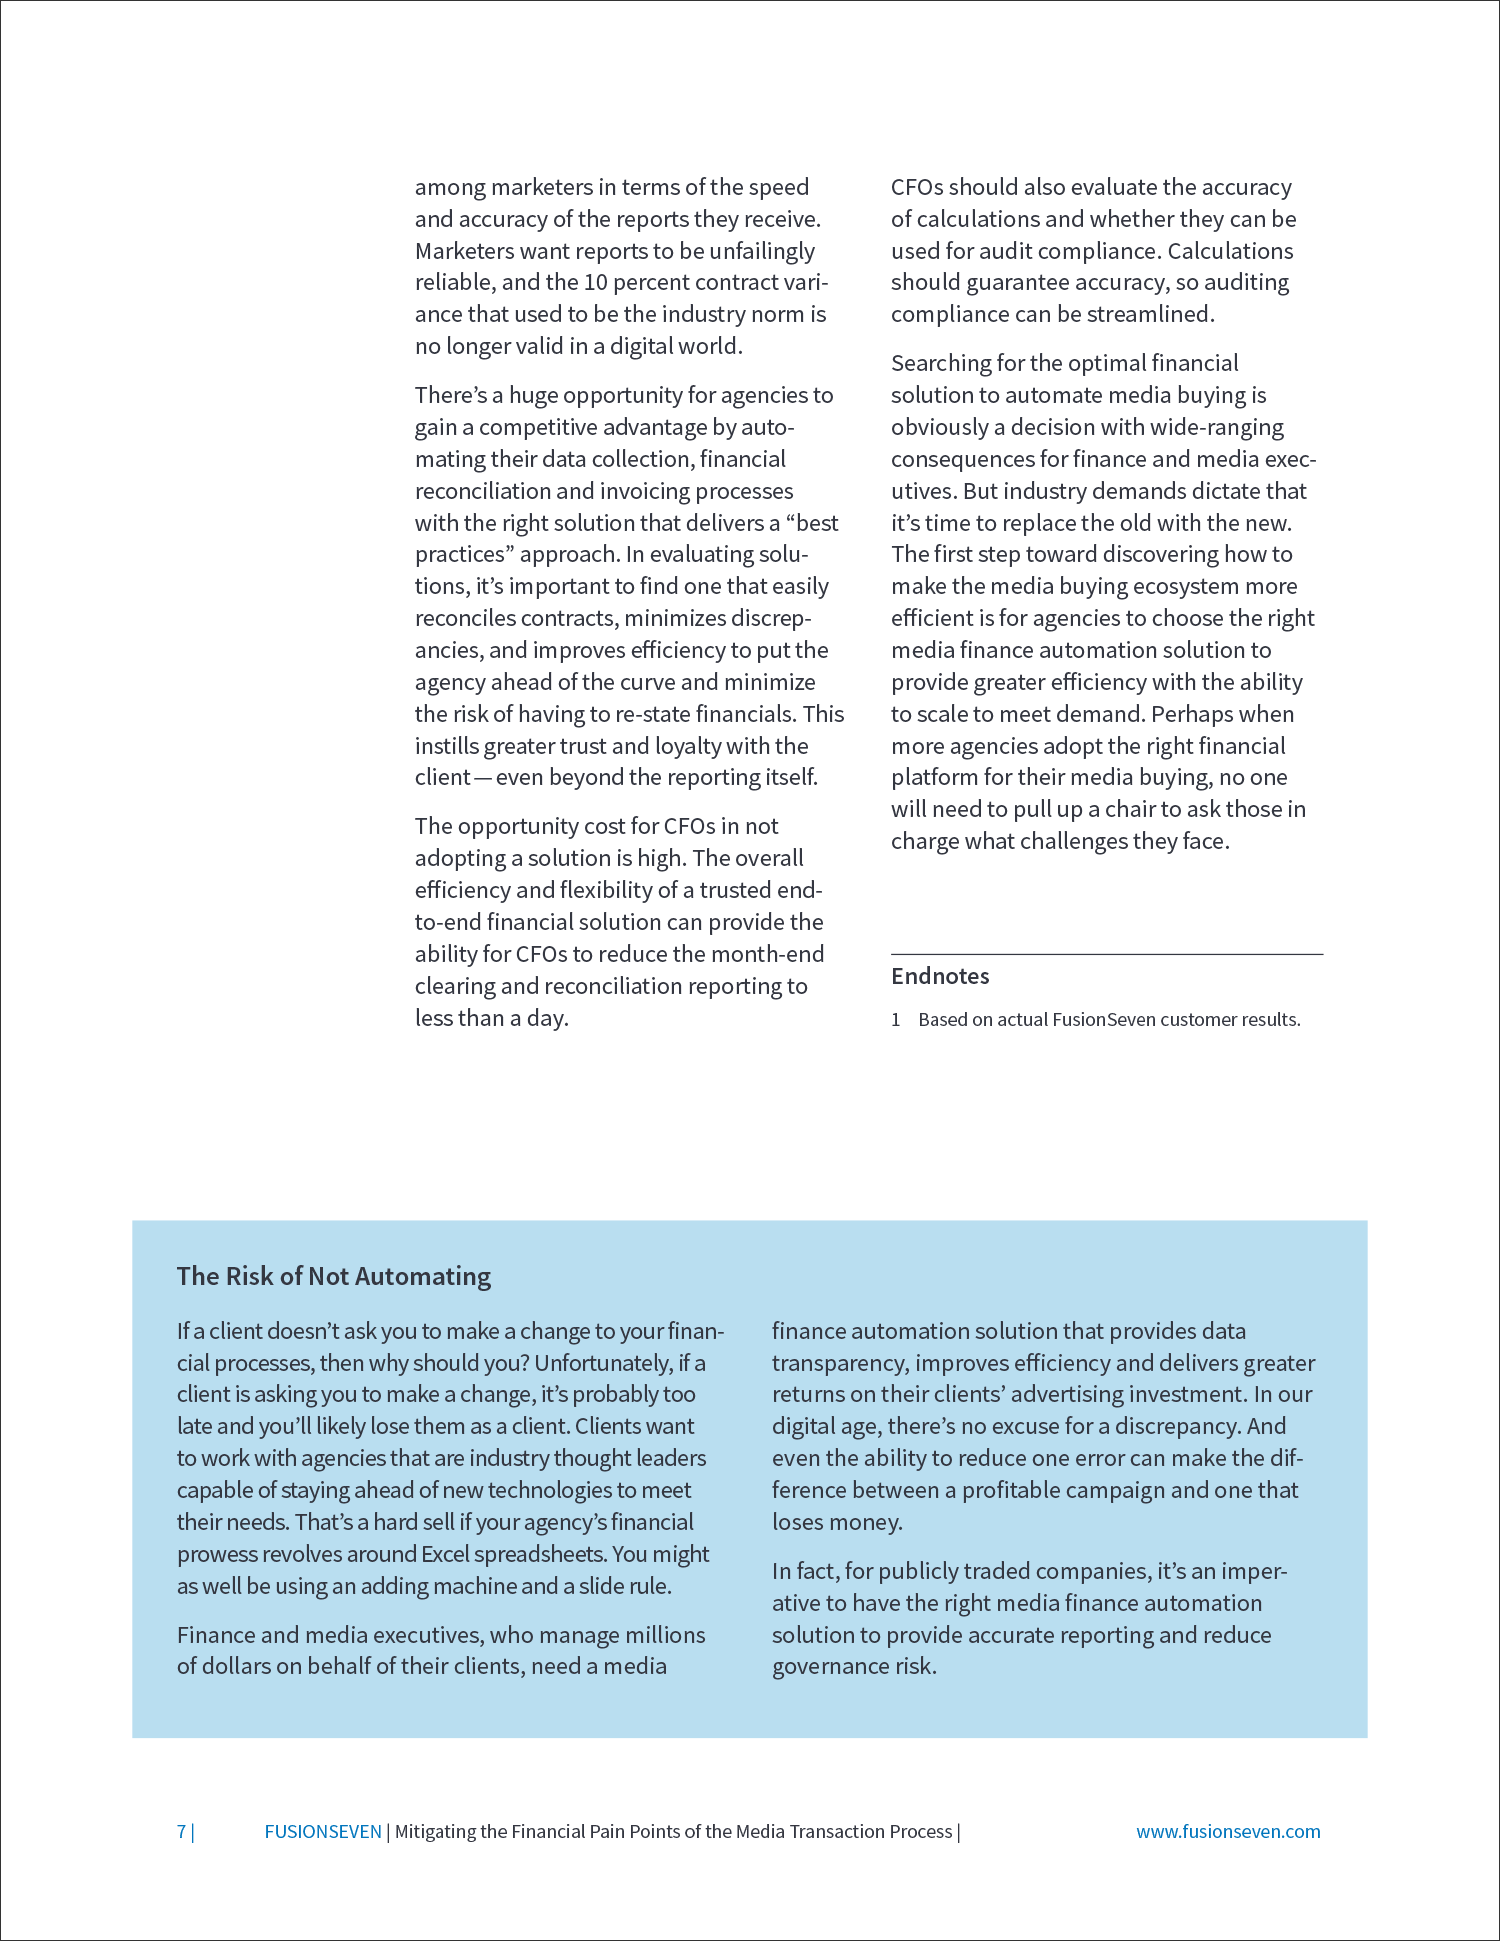 fusionseven-whitepaper-7.png